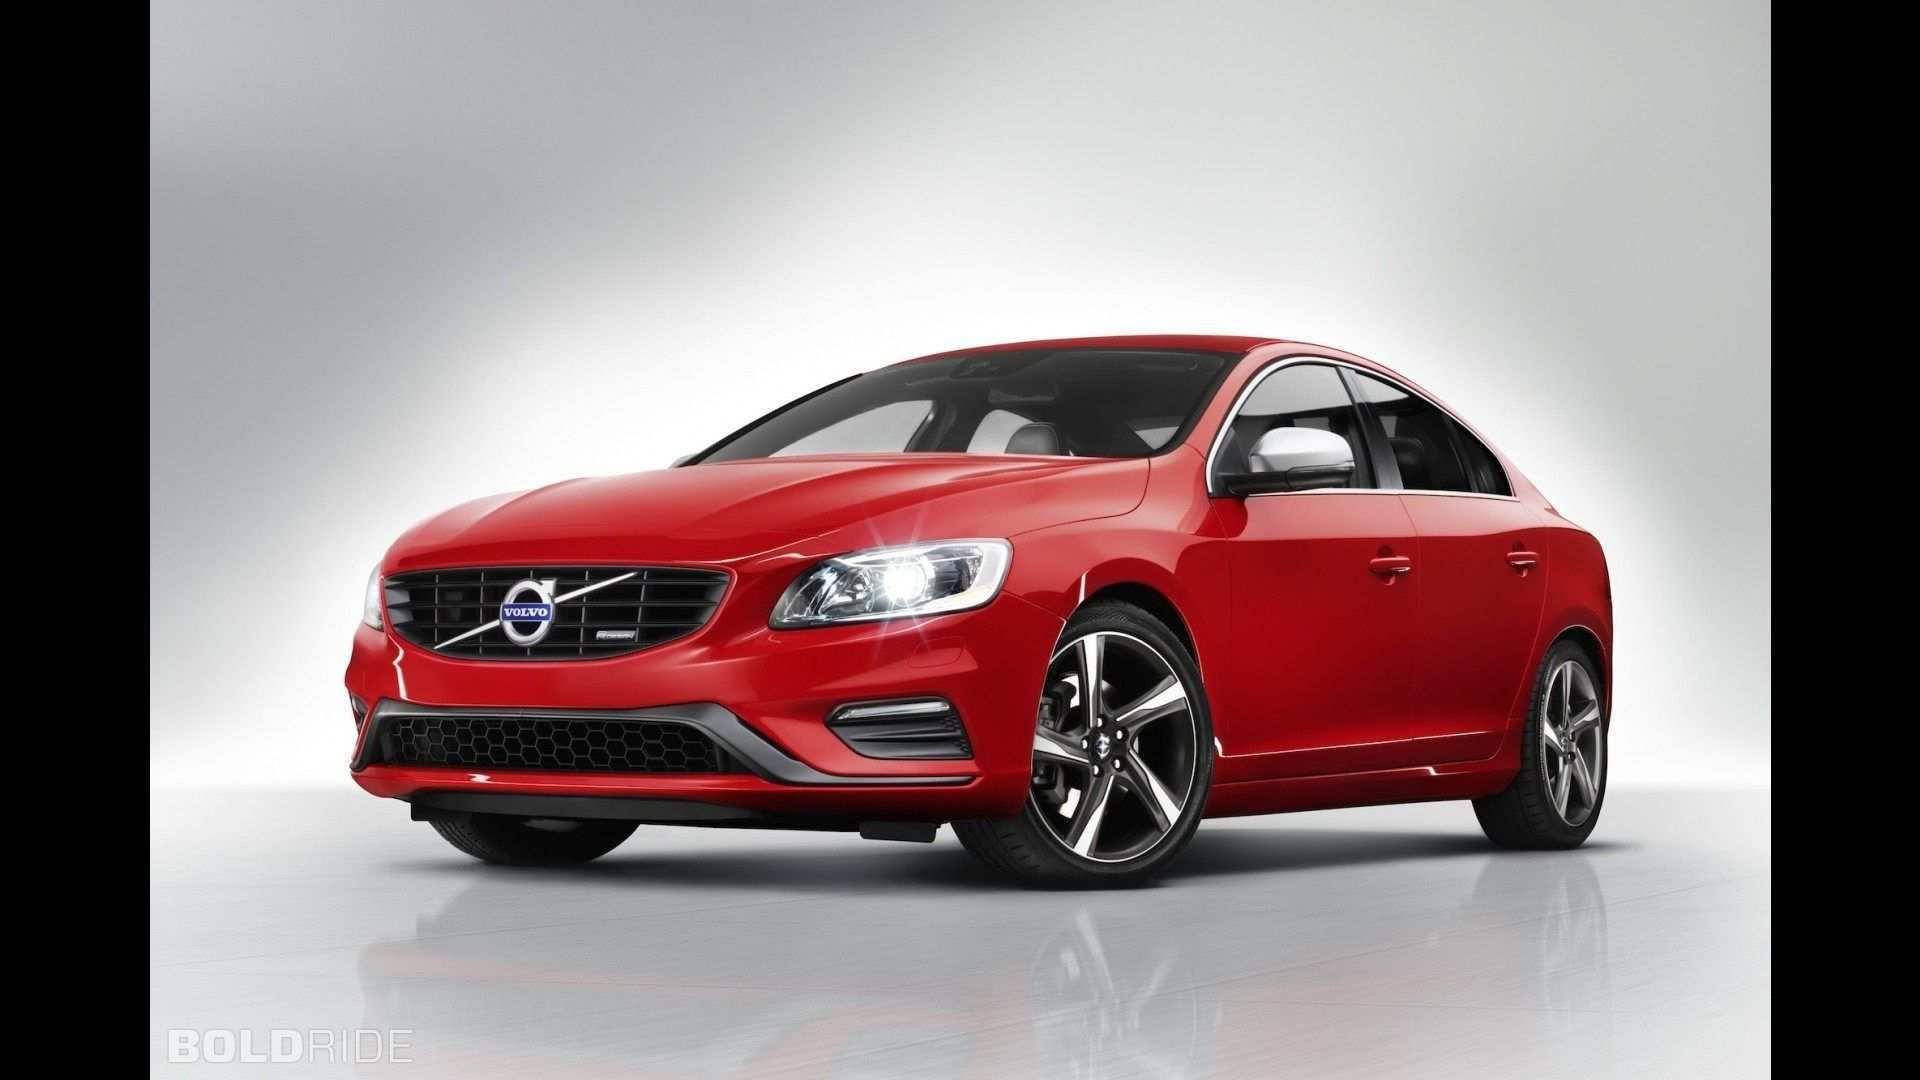 59 Great 2020 Volvo S60 R Images for 2020 Volvo S60 R